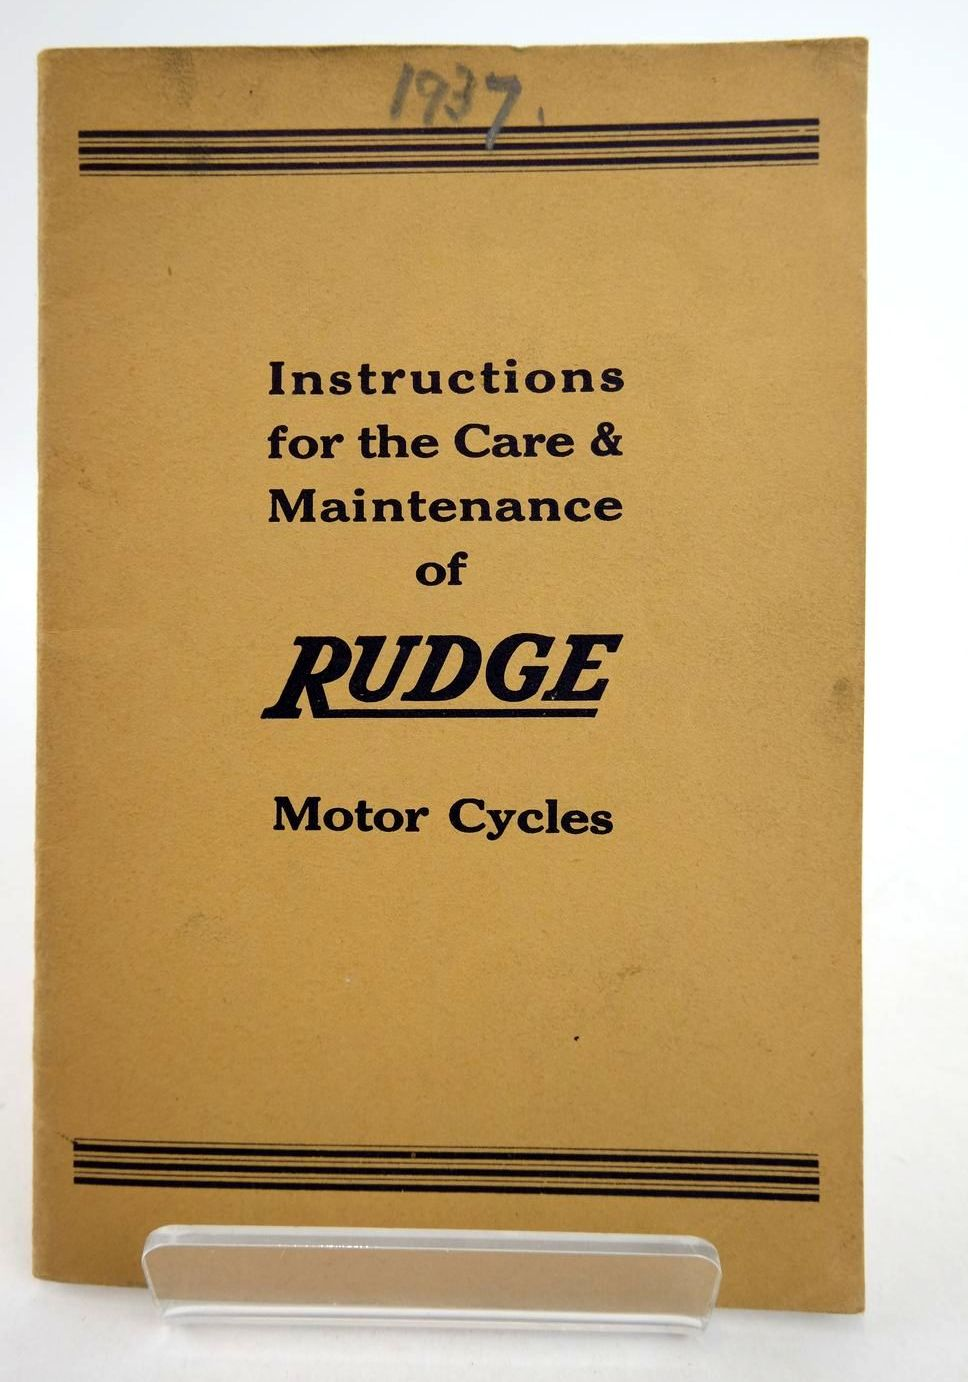 Photo of HOW TO TAKE CARE OF YOUR RUDGE published by Rudge-Whitworth Ltd. (STOCK CODE: 2133184)  for sale by Stella & Rose's Books